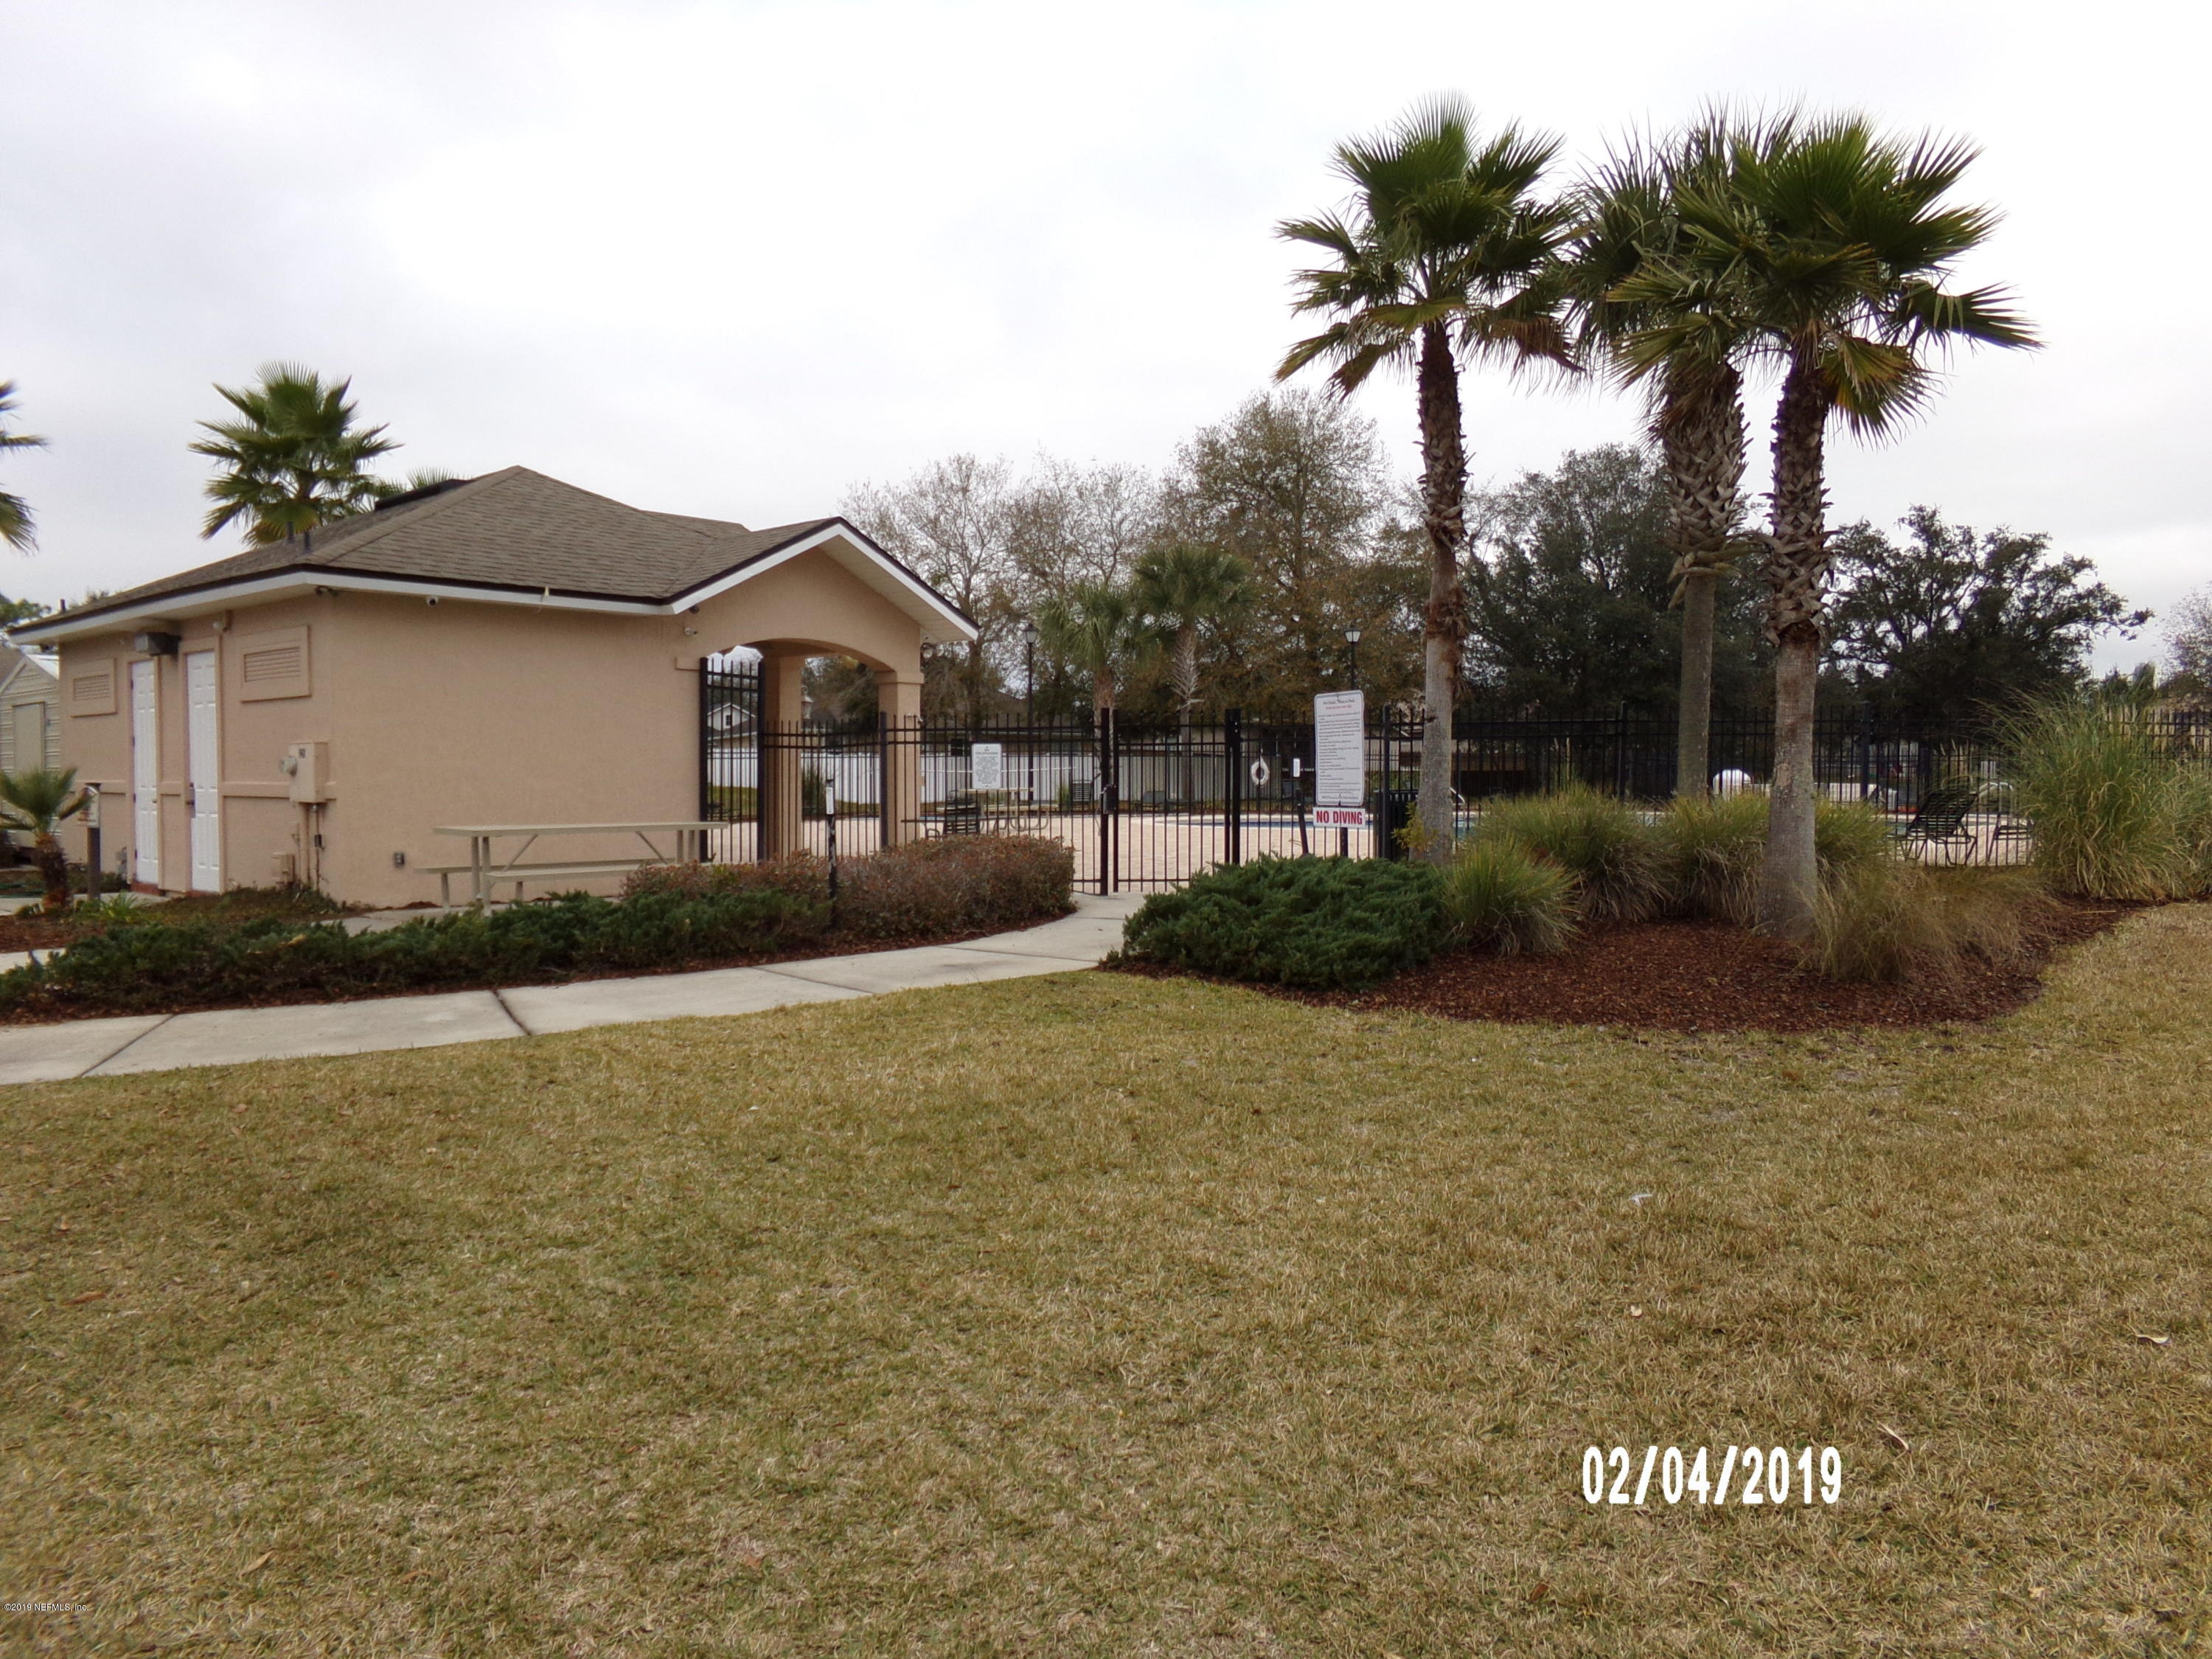 1879 CREEKVIEW, GREEN COVE SPRINGS, FLORIDA 32043, 3 Bedrooms Bedrooms, ,2 BathroomsBathrooms,Residential - single family,For sale,CREEKVIEW,972535